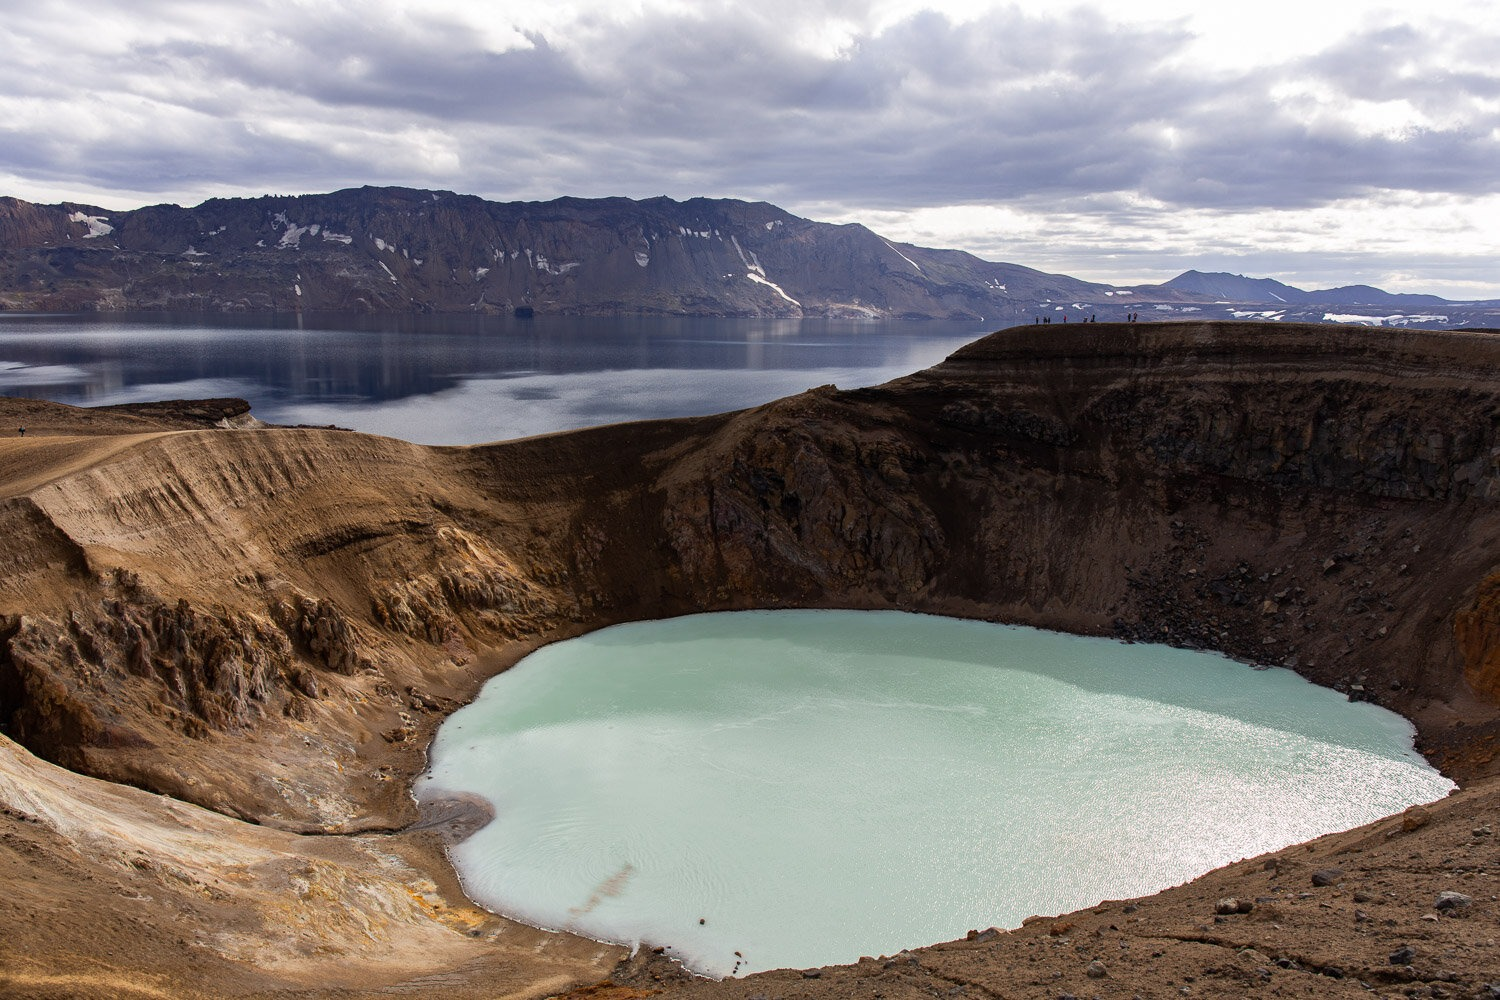 blue caldera with water